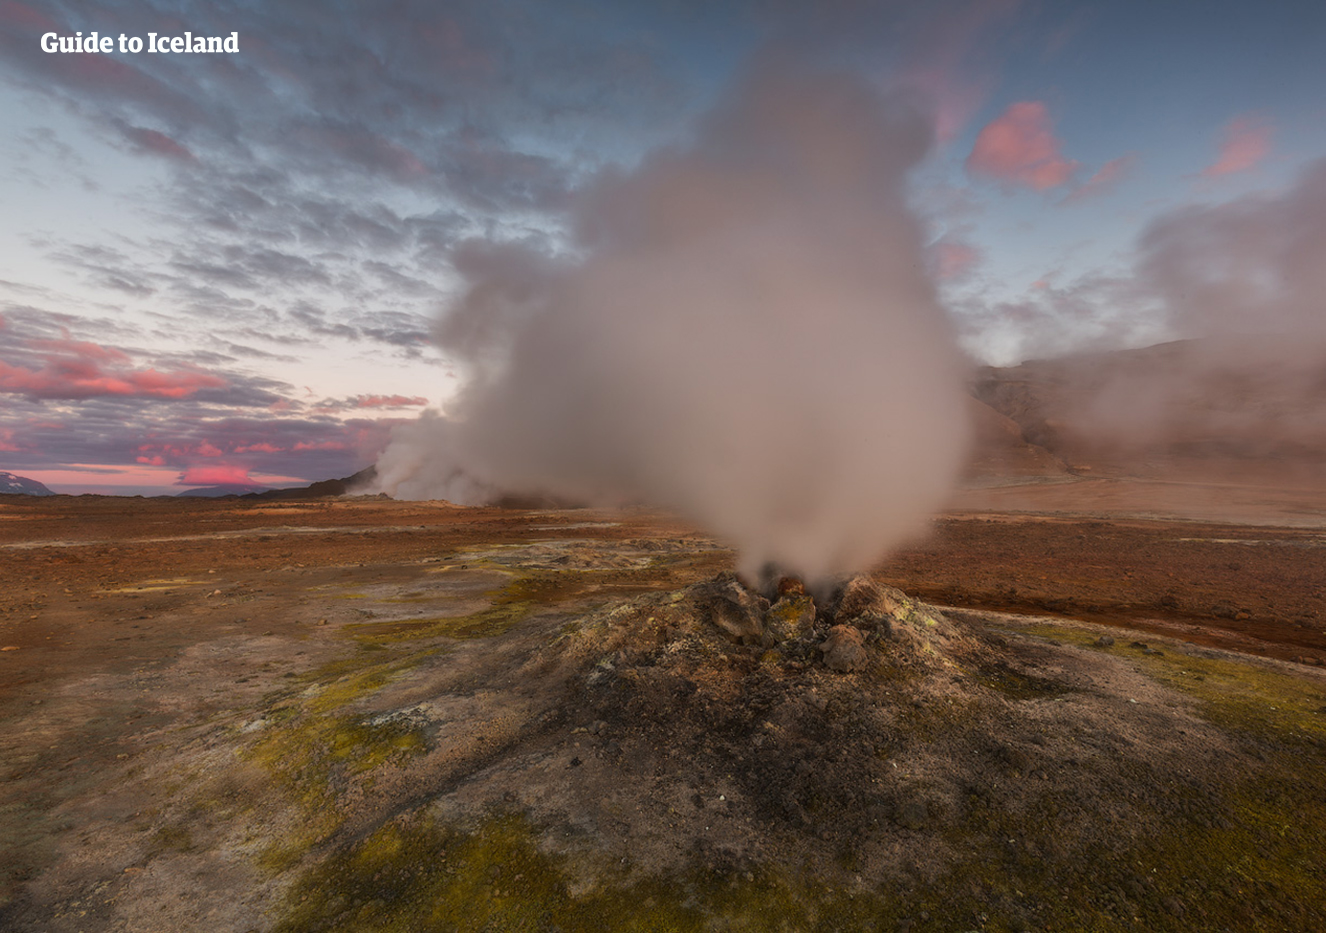 Steaming fumaroles and bubbling mud pools are found at Námaskarð pass near Lake Mývatn.